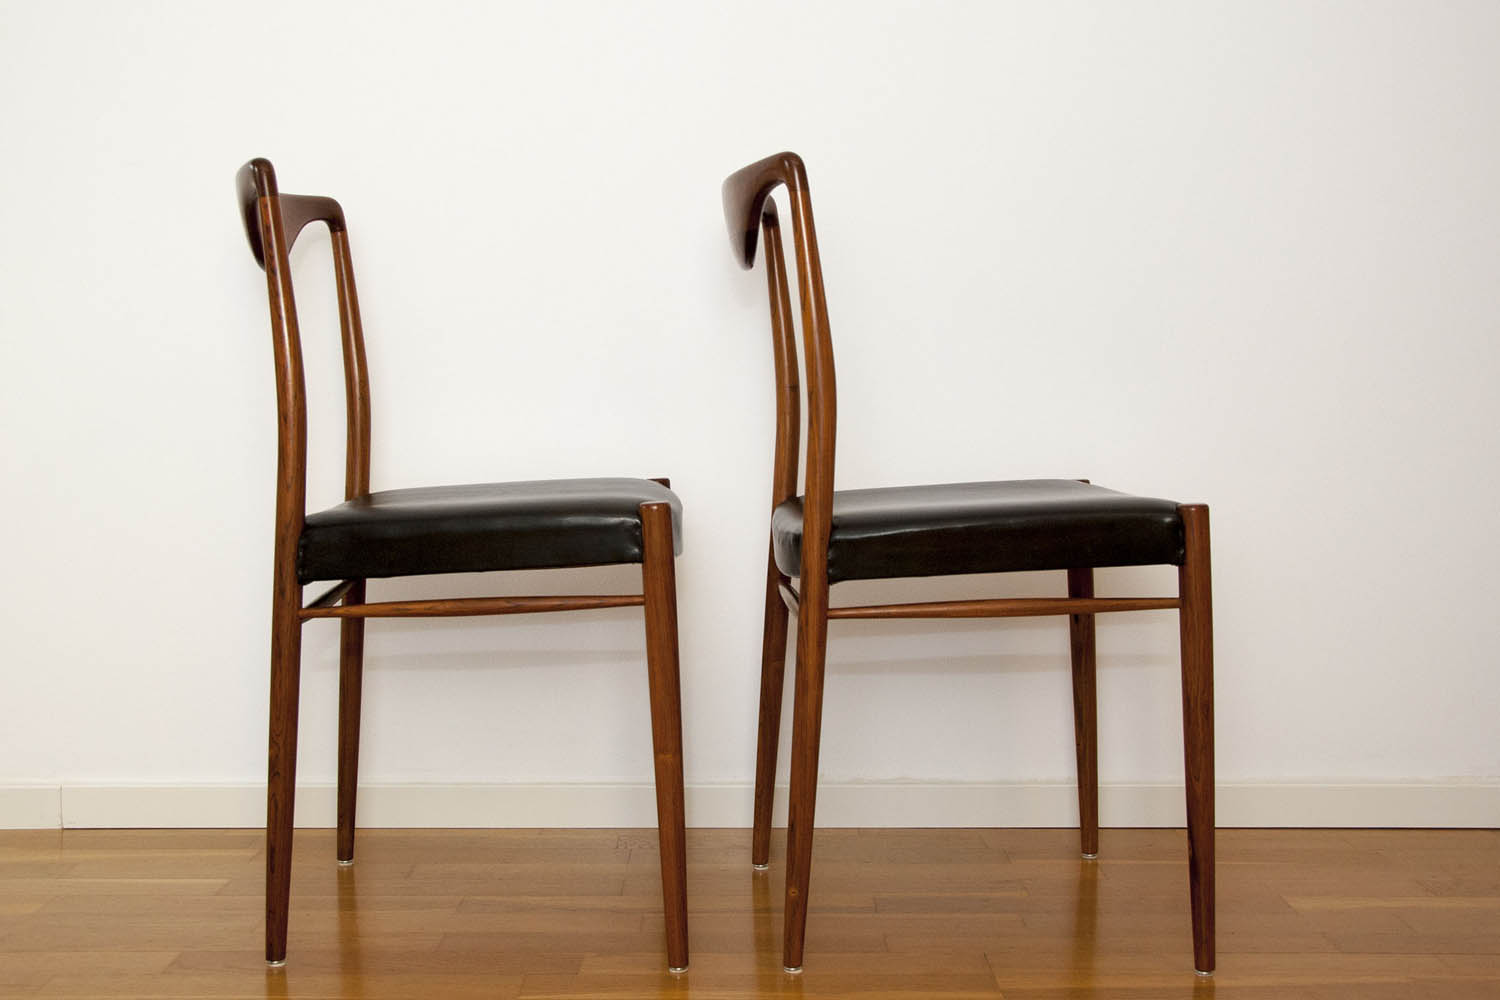 design k?ksstolar  Dining Chairs Scandinavian Design & exclusive